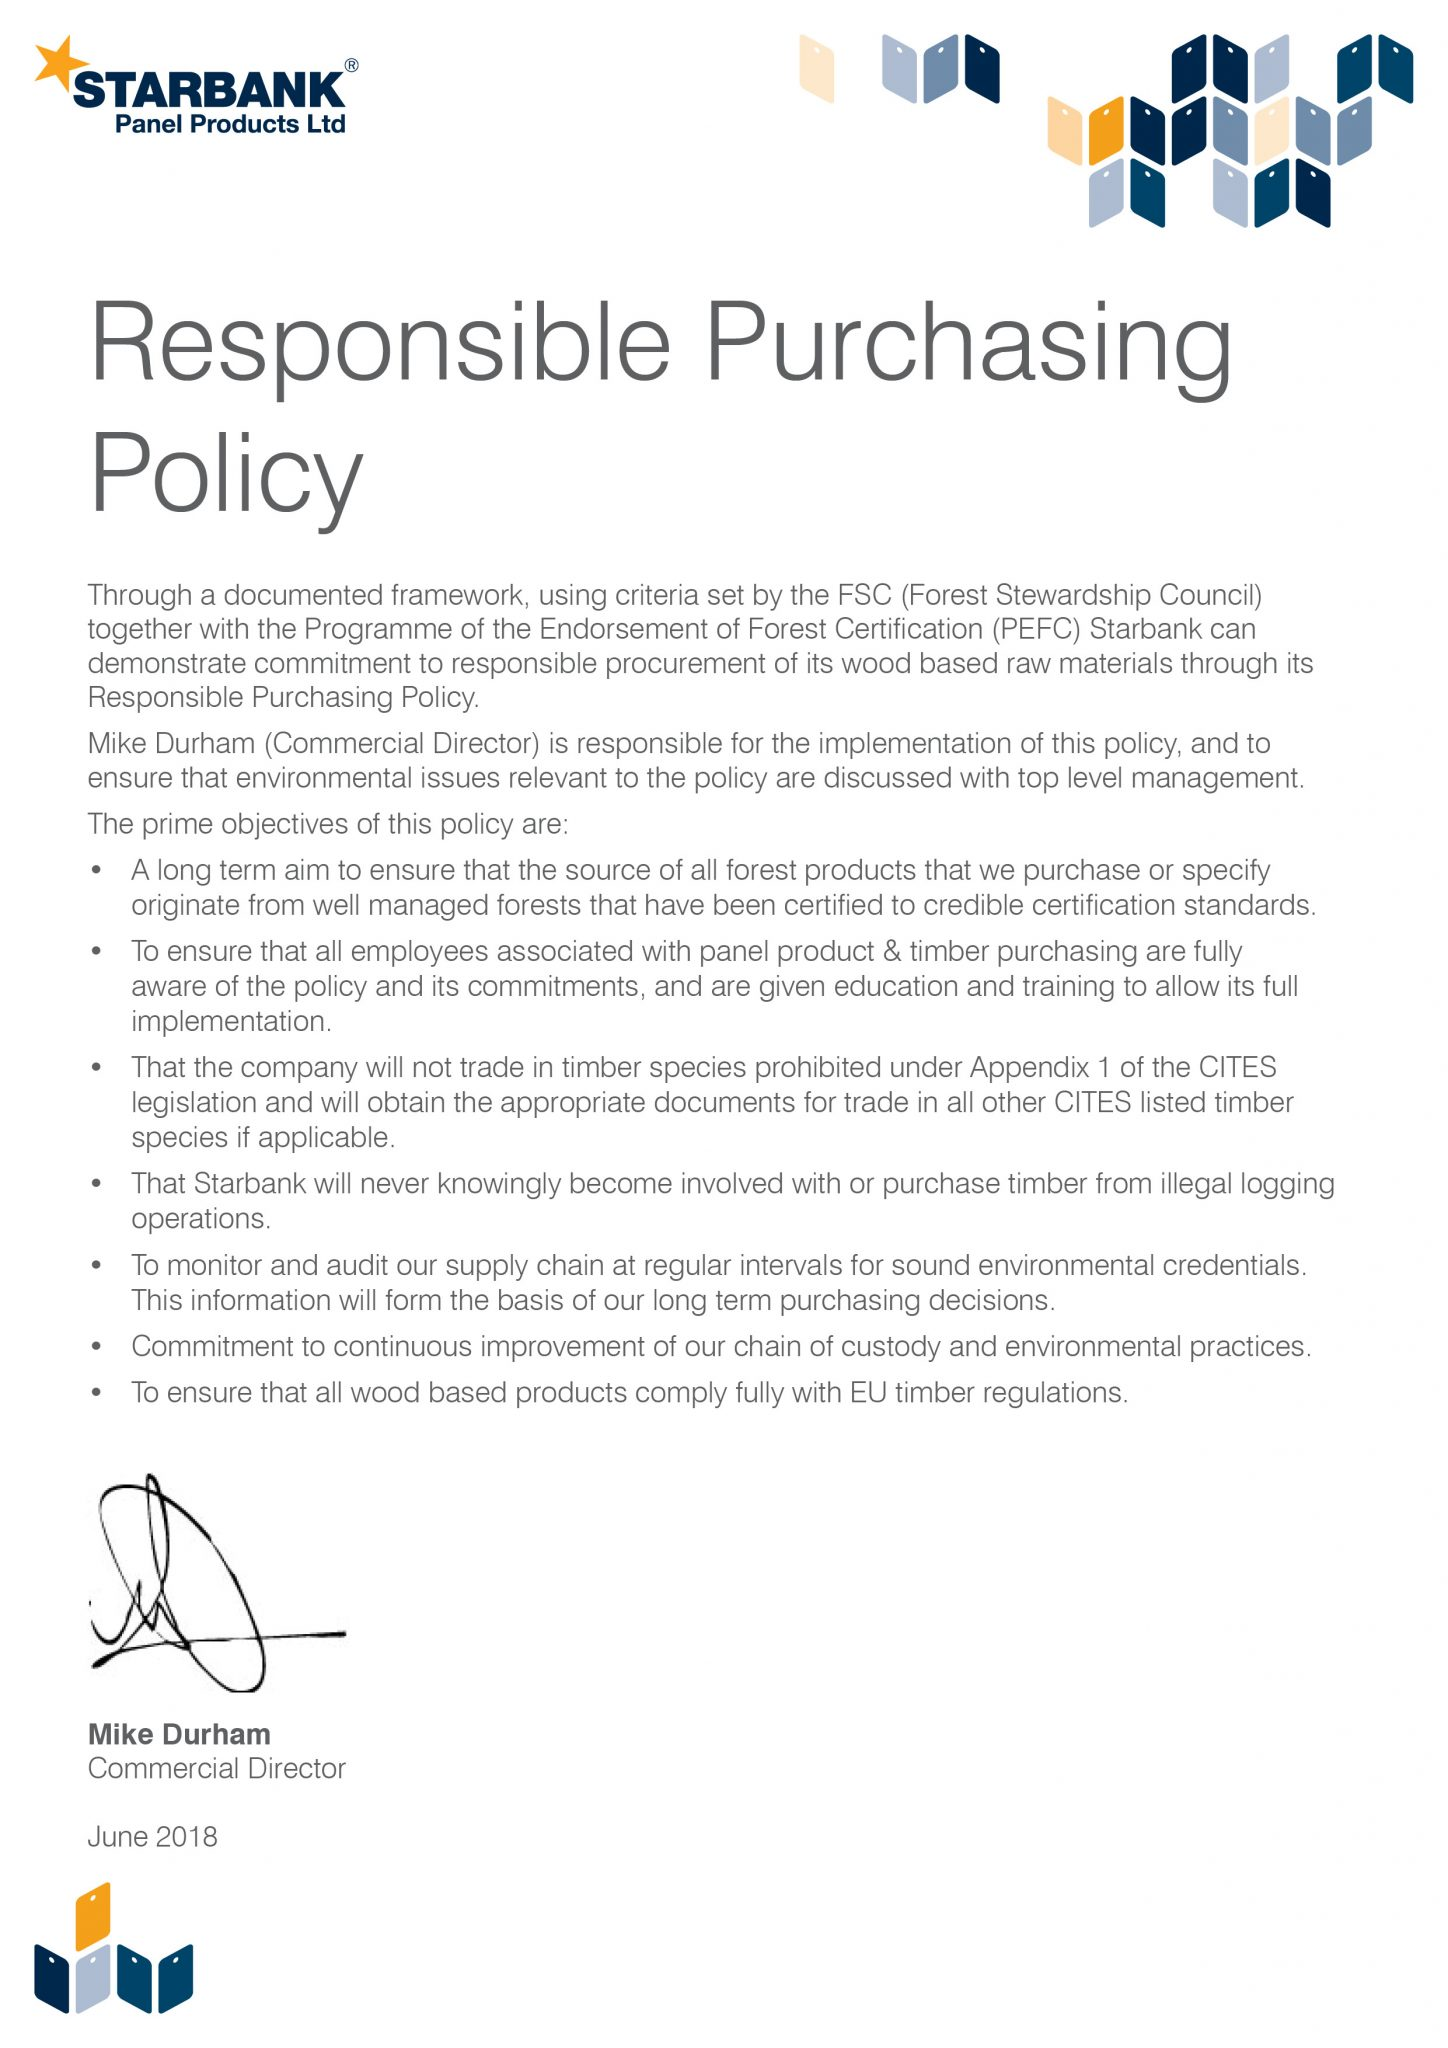 Starbank Purchasing Policy